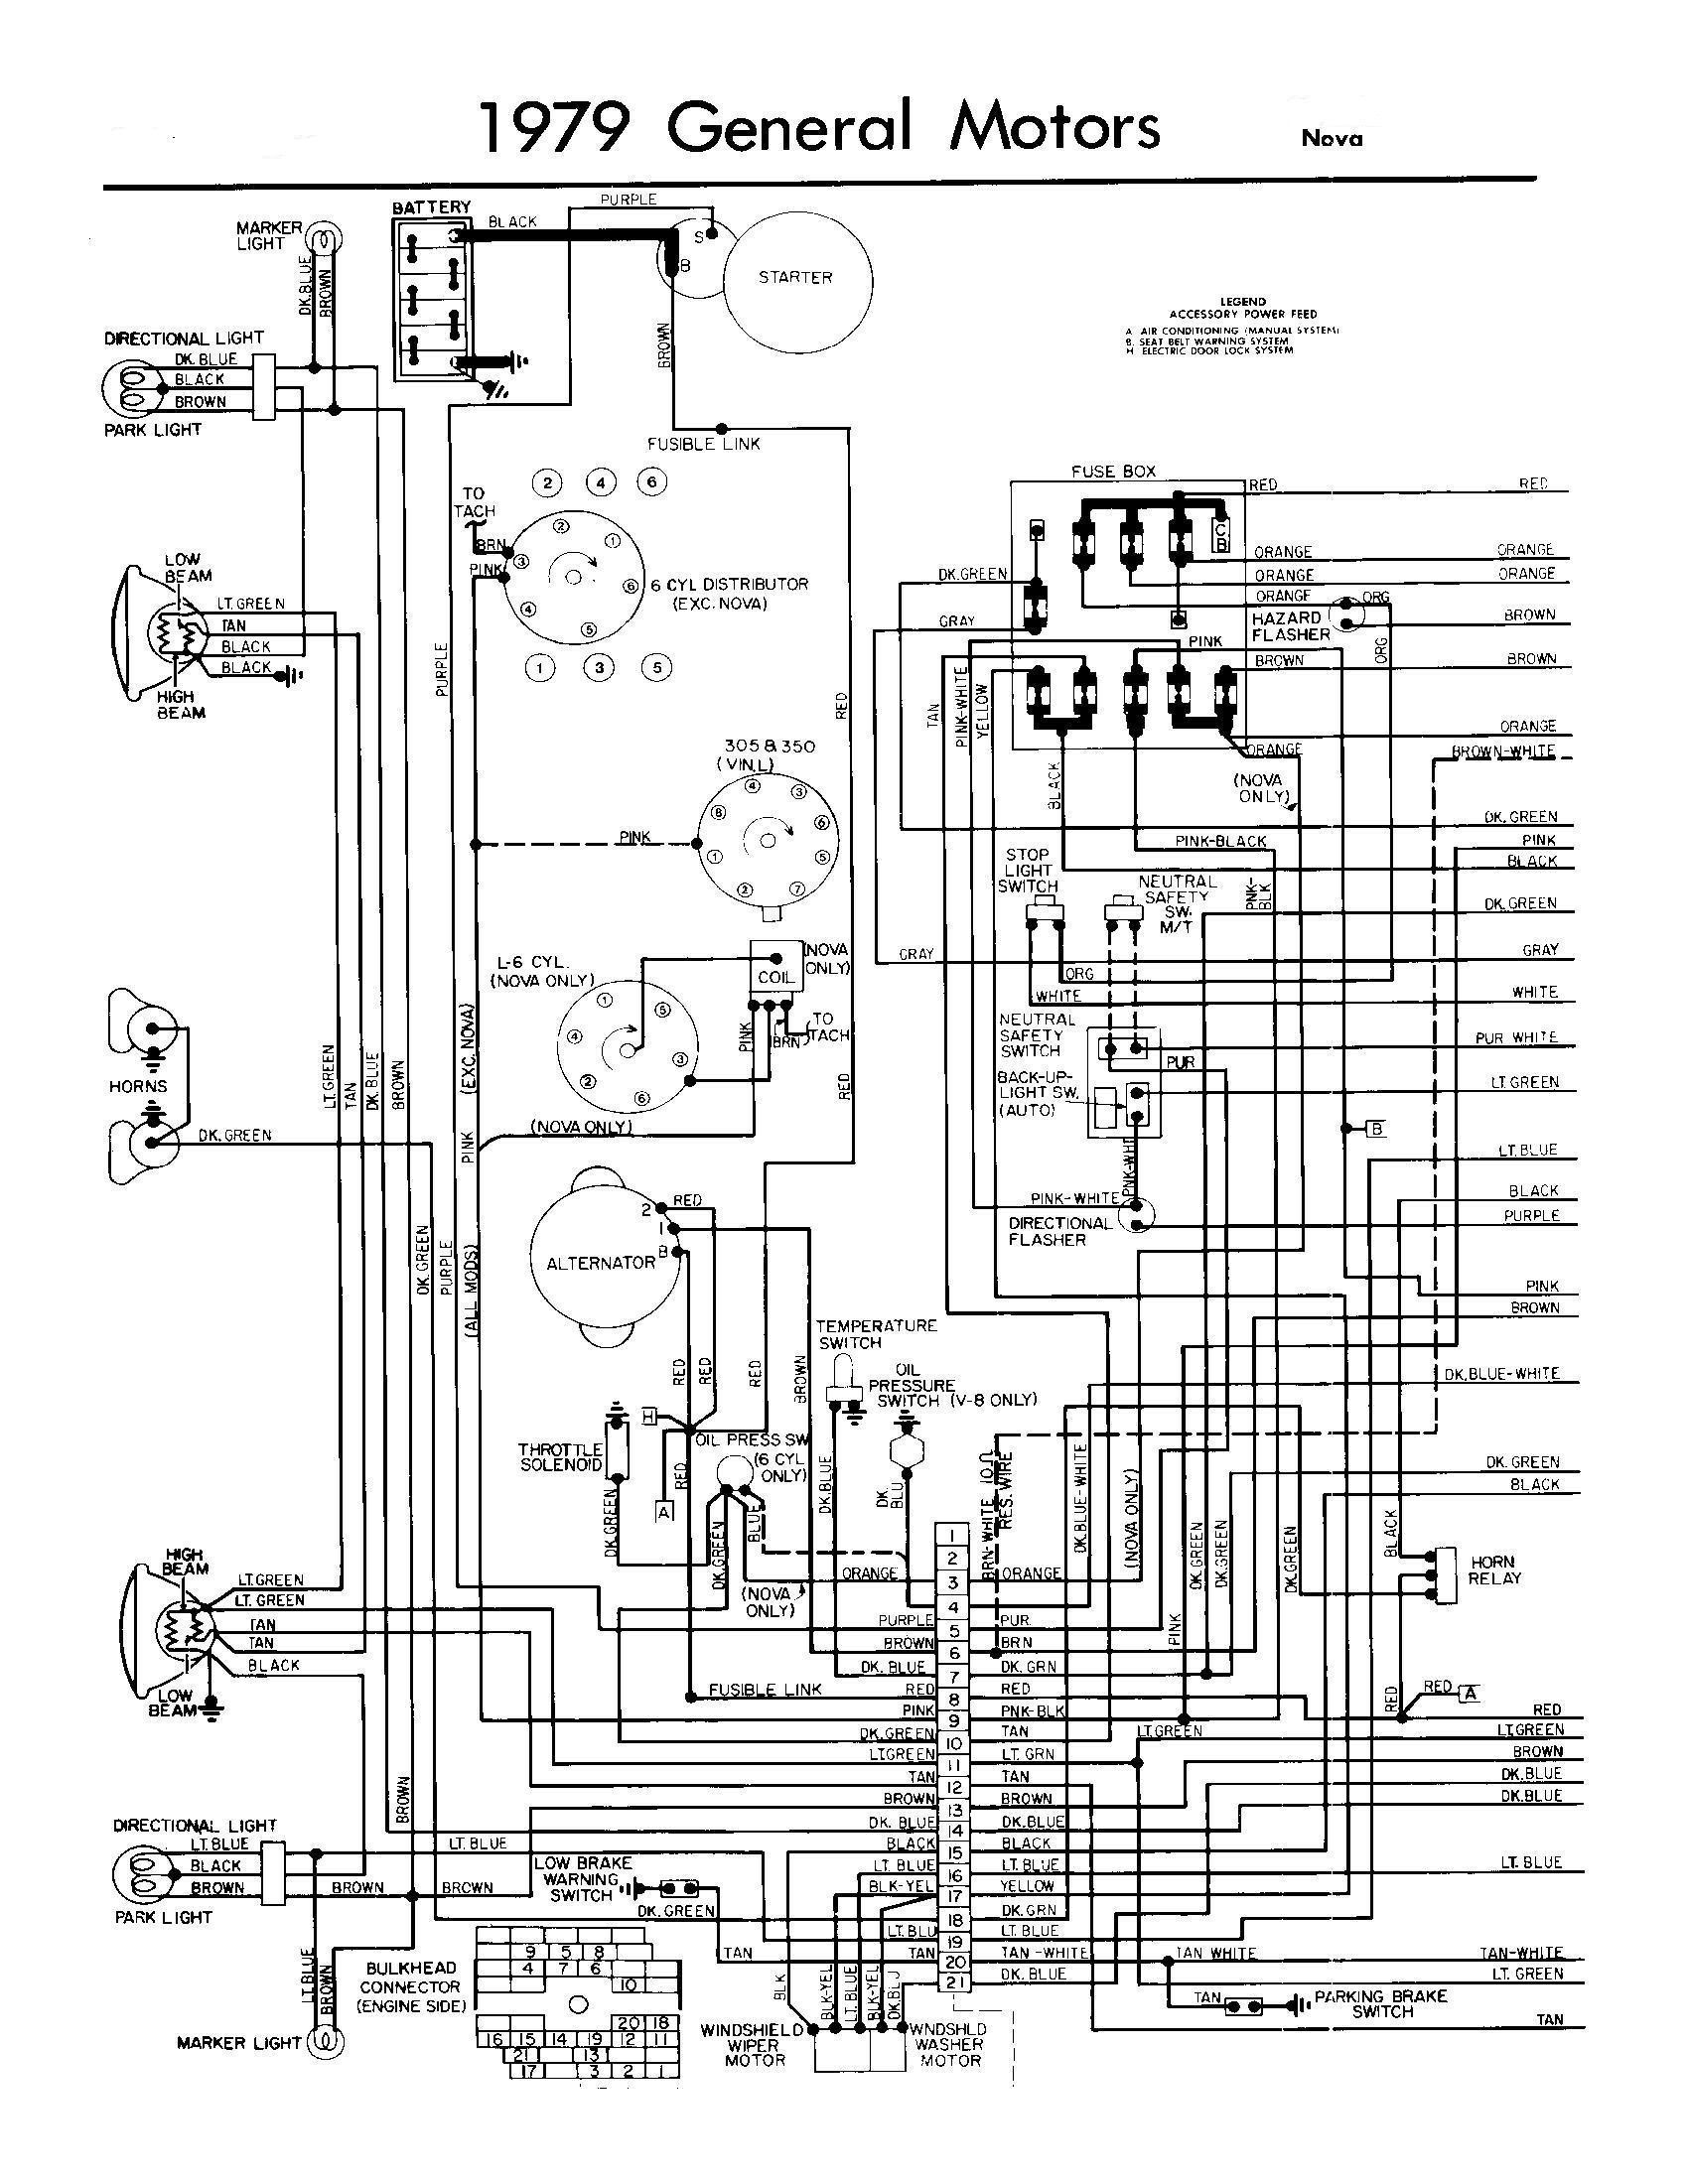 1989 corvette ac wiring wiring diagram project  1989 corvette ac wiring #10